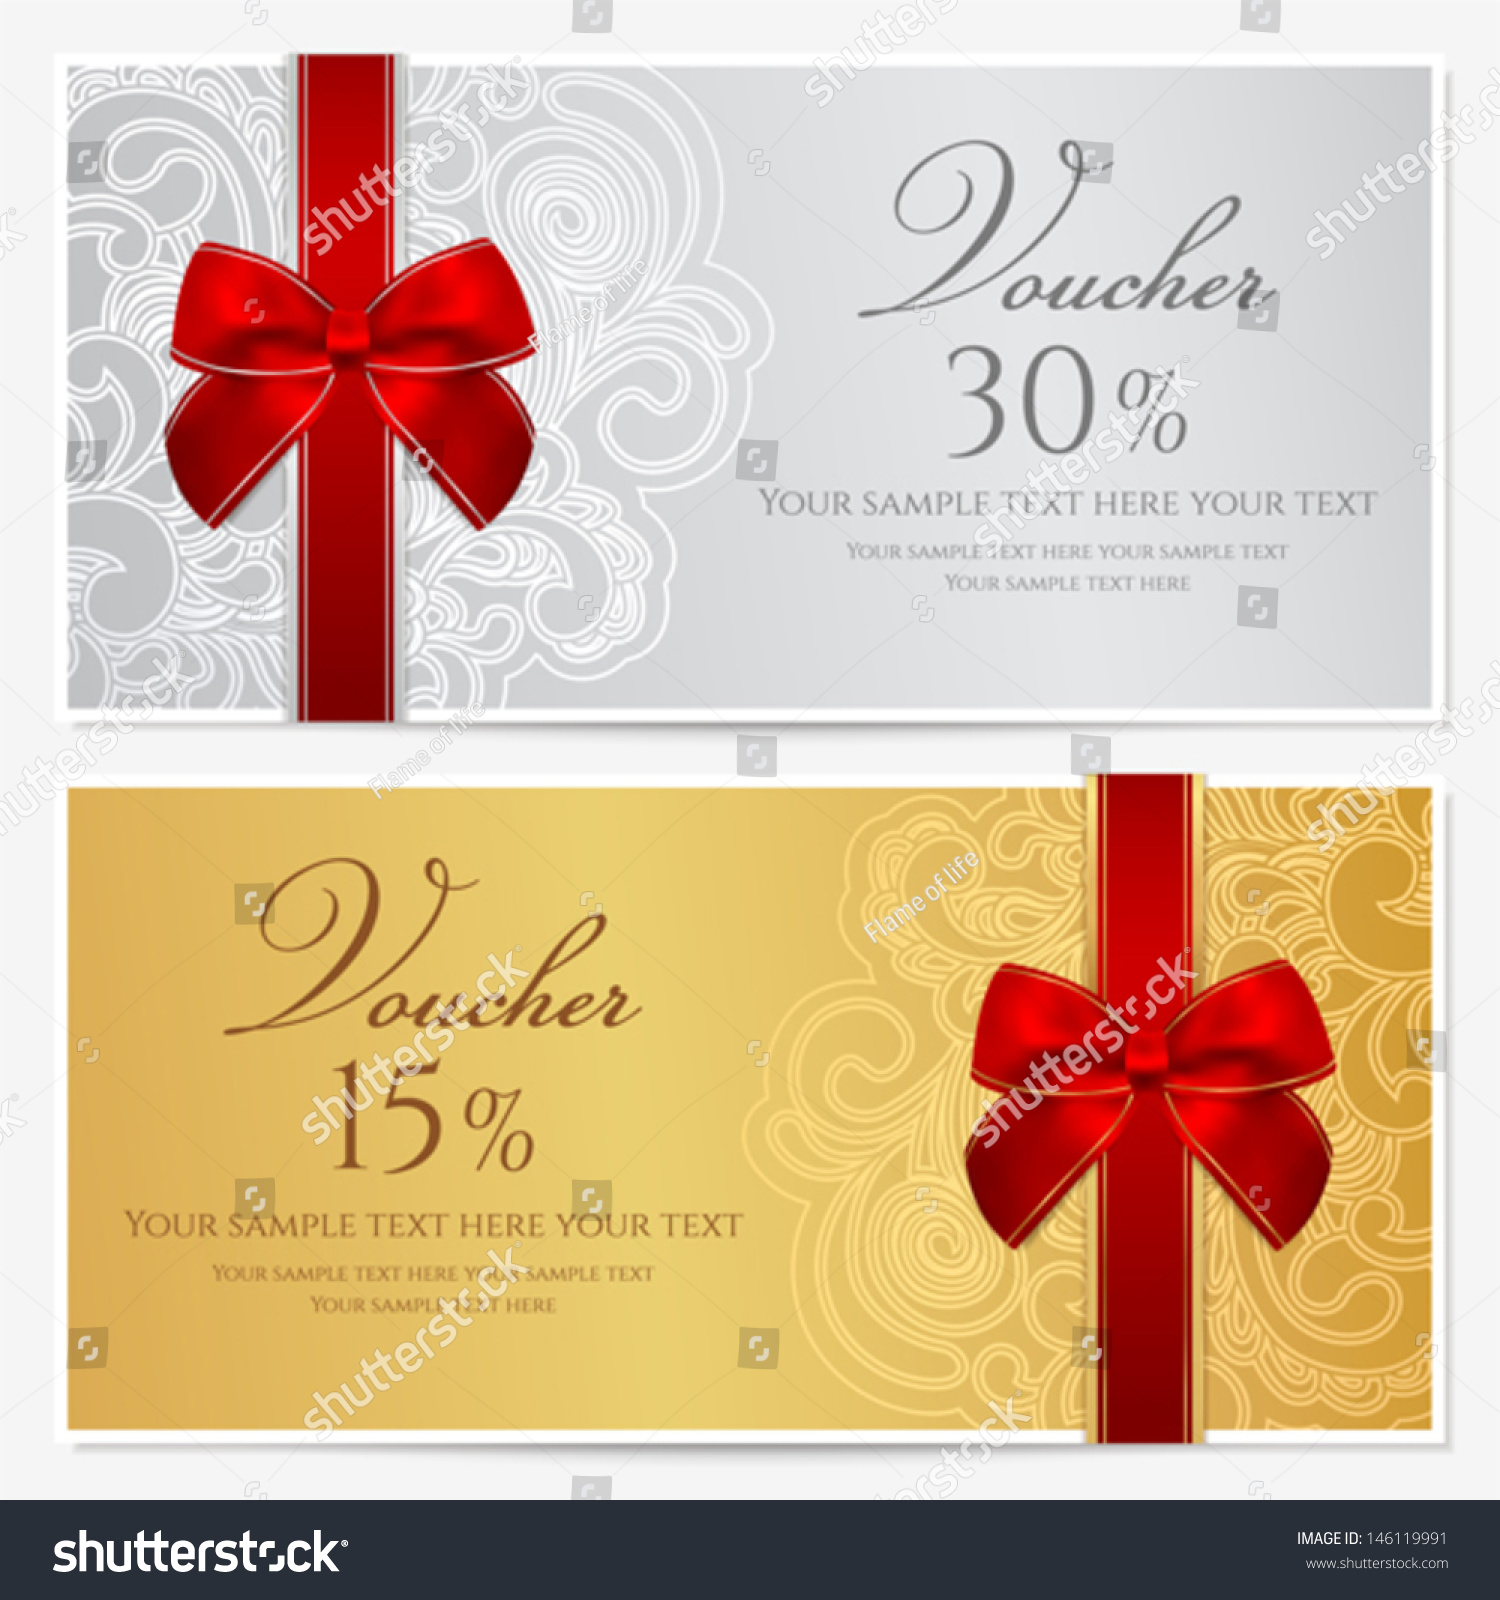 Vouchers Template Gift Certificate TemplateFree Printable Gift – Sample Vouchers